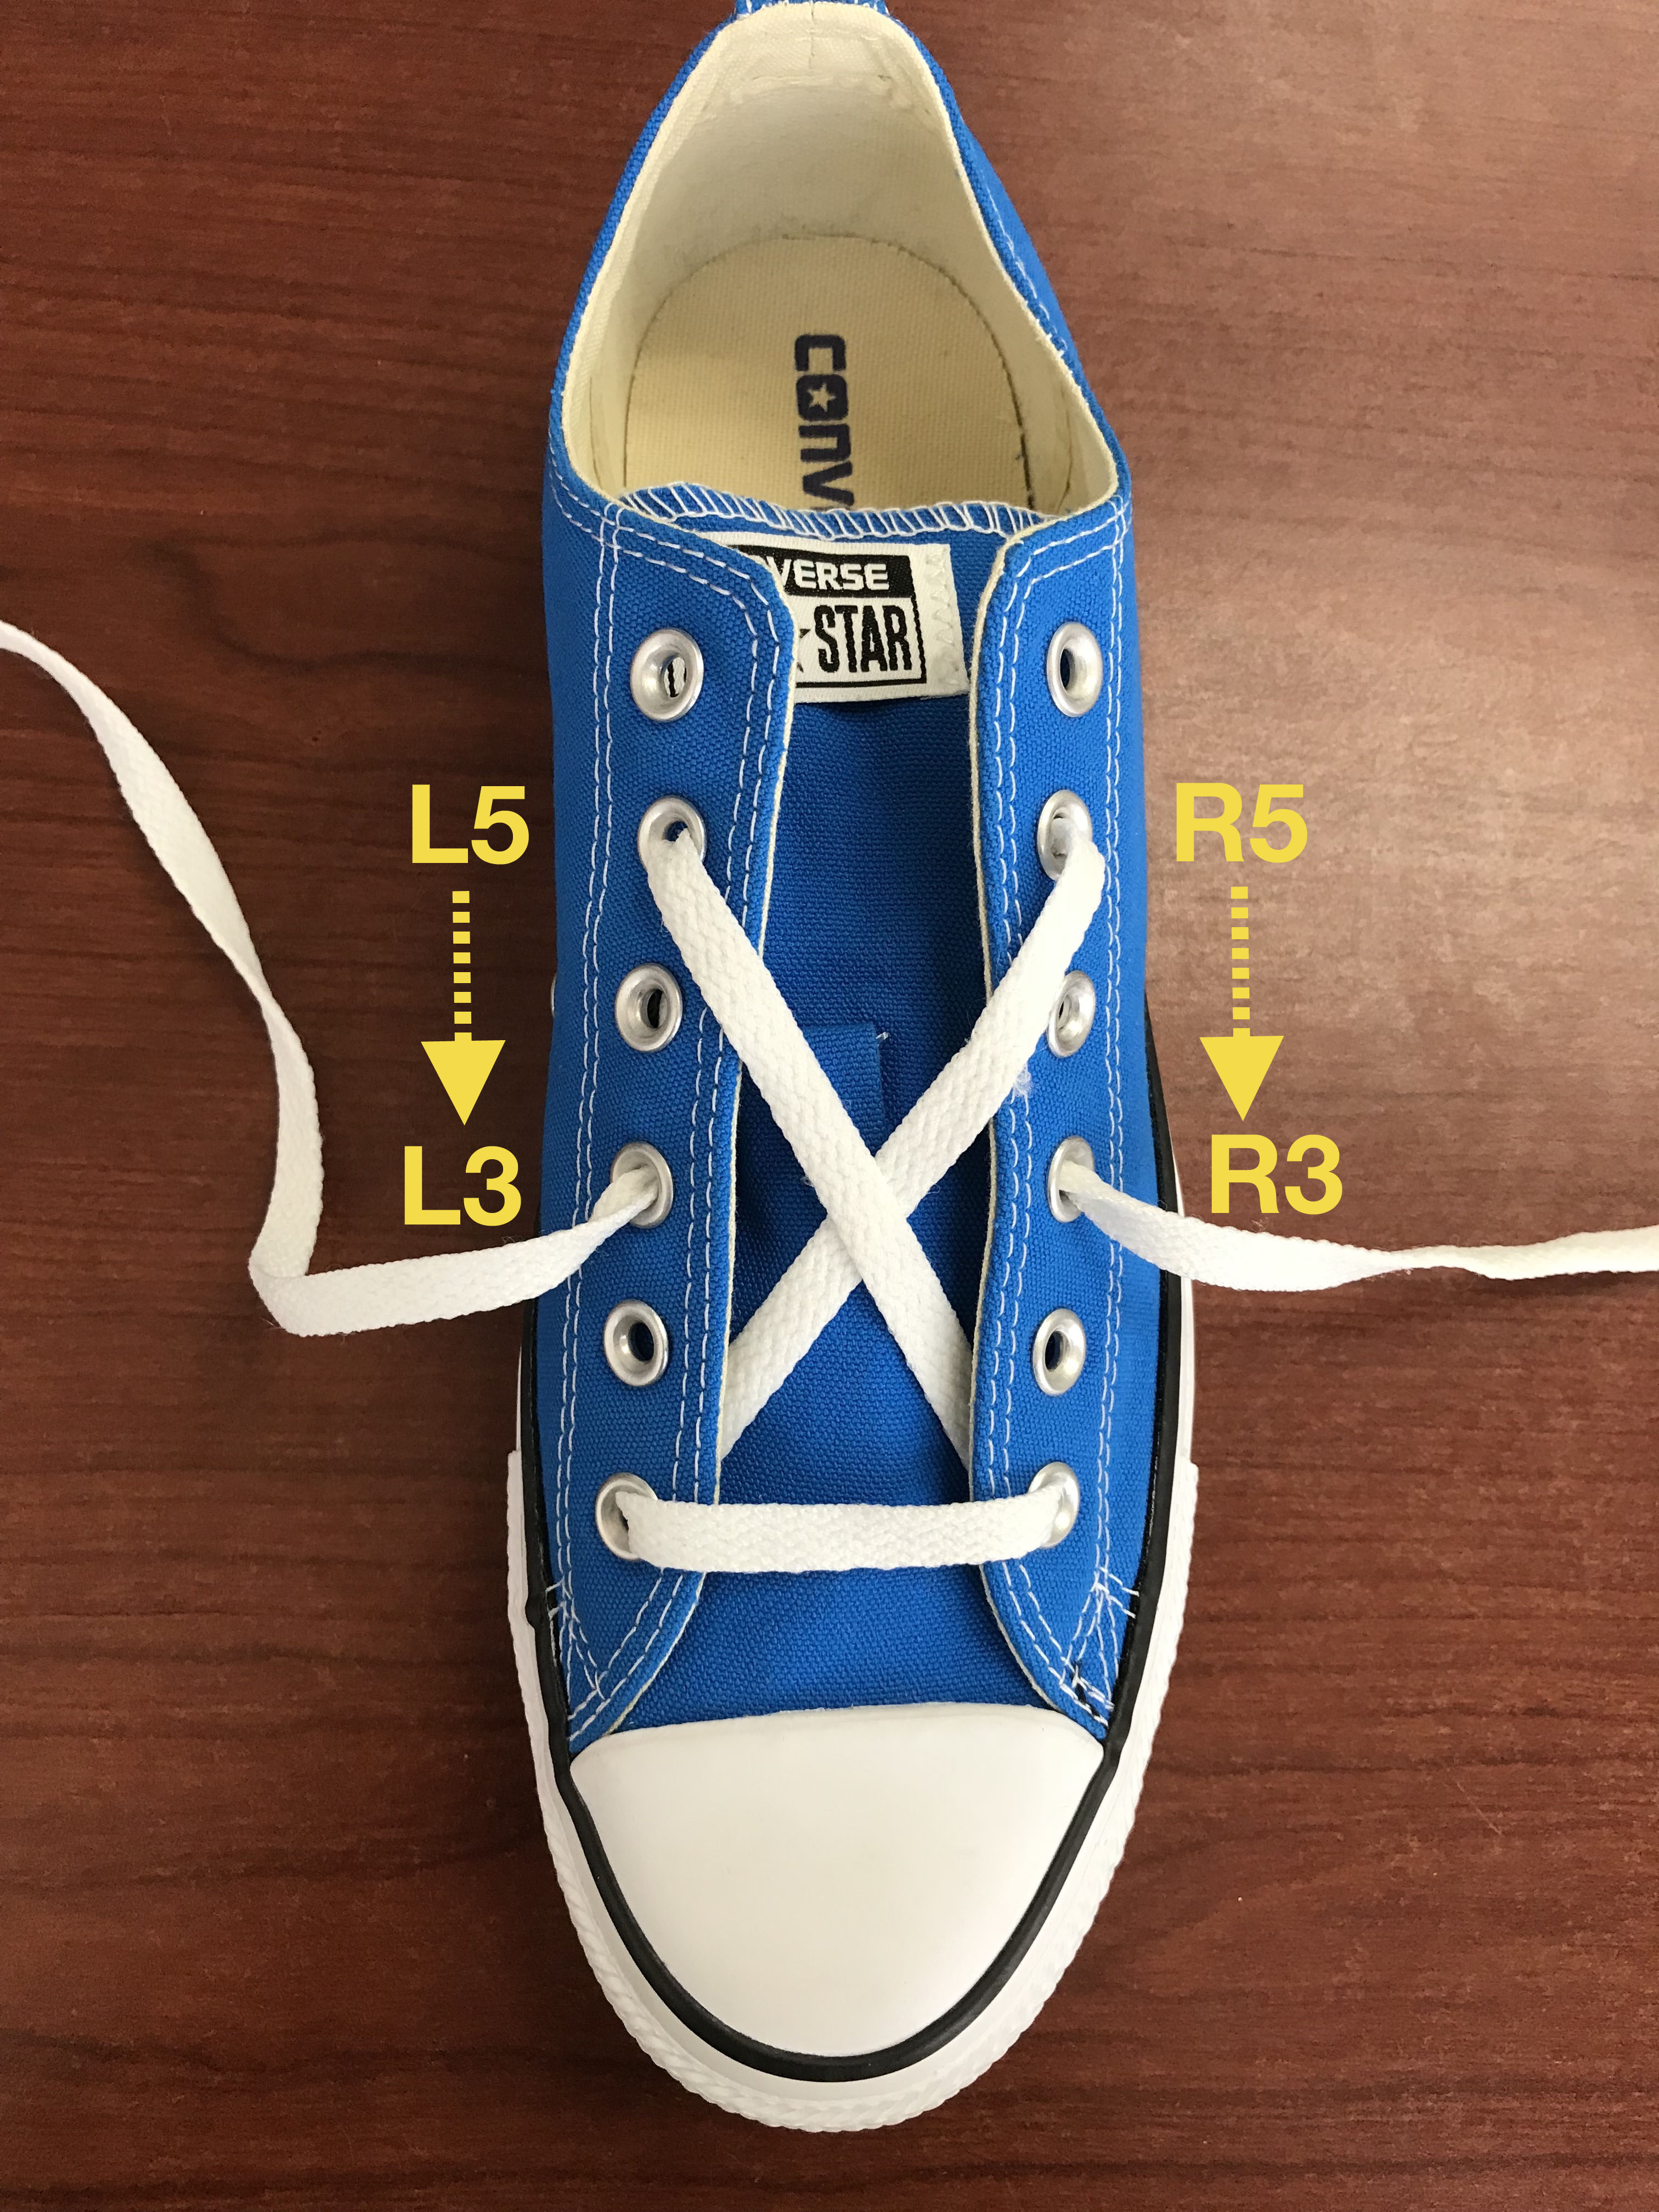 sports shoes 3c428 b2d43 Bottom of R1 to top of L5. Bottom of L1 to top of R5.